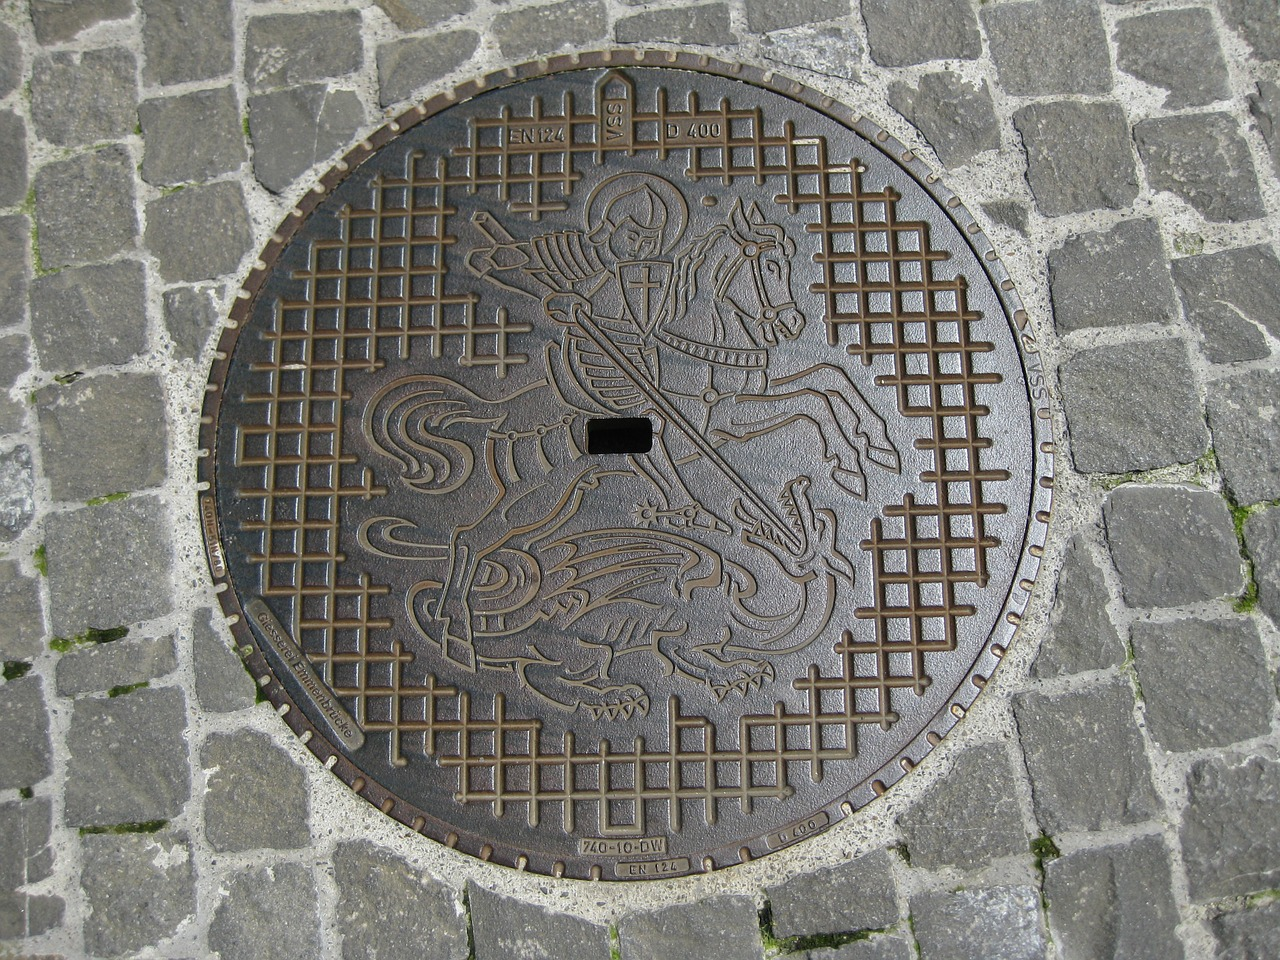 manhole cover,channel,lid,stone,rhine,free pictures, free photos, free images, royalty free, free illustrations, public domain